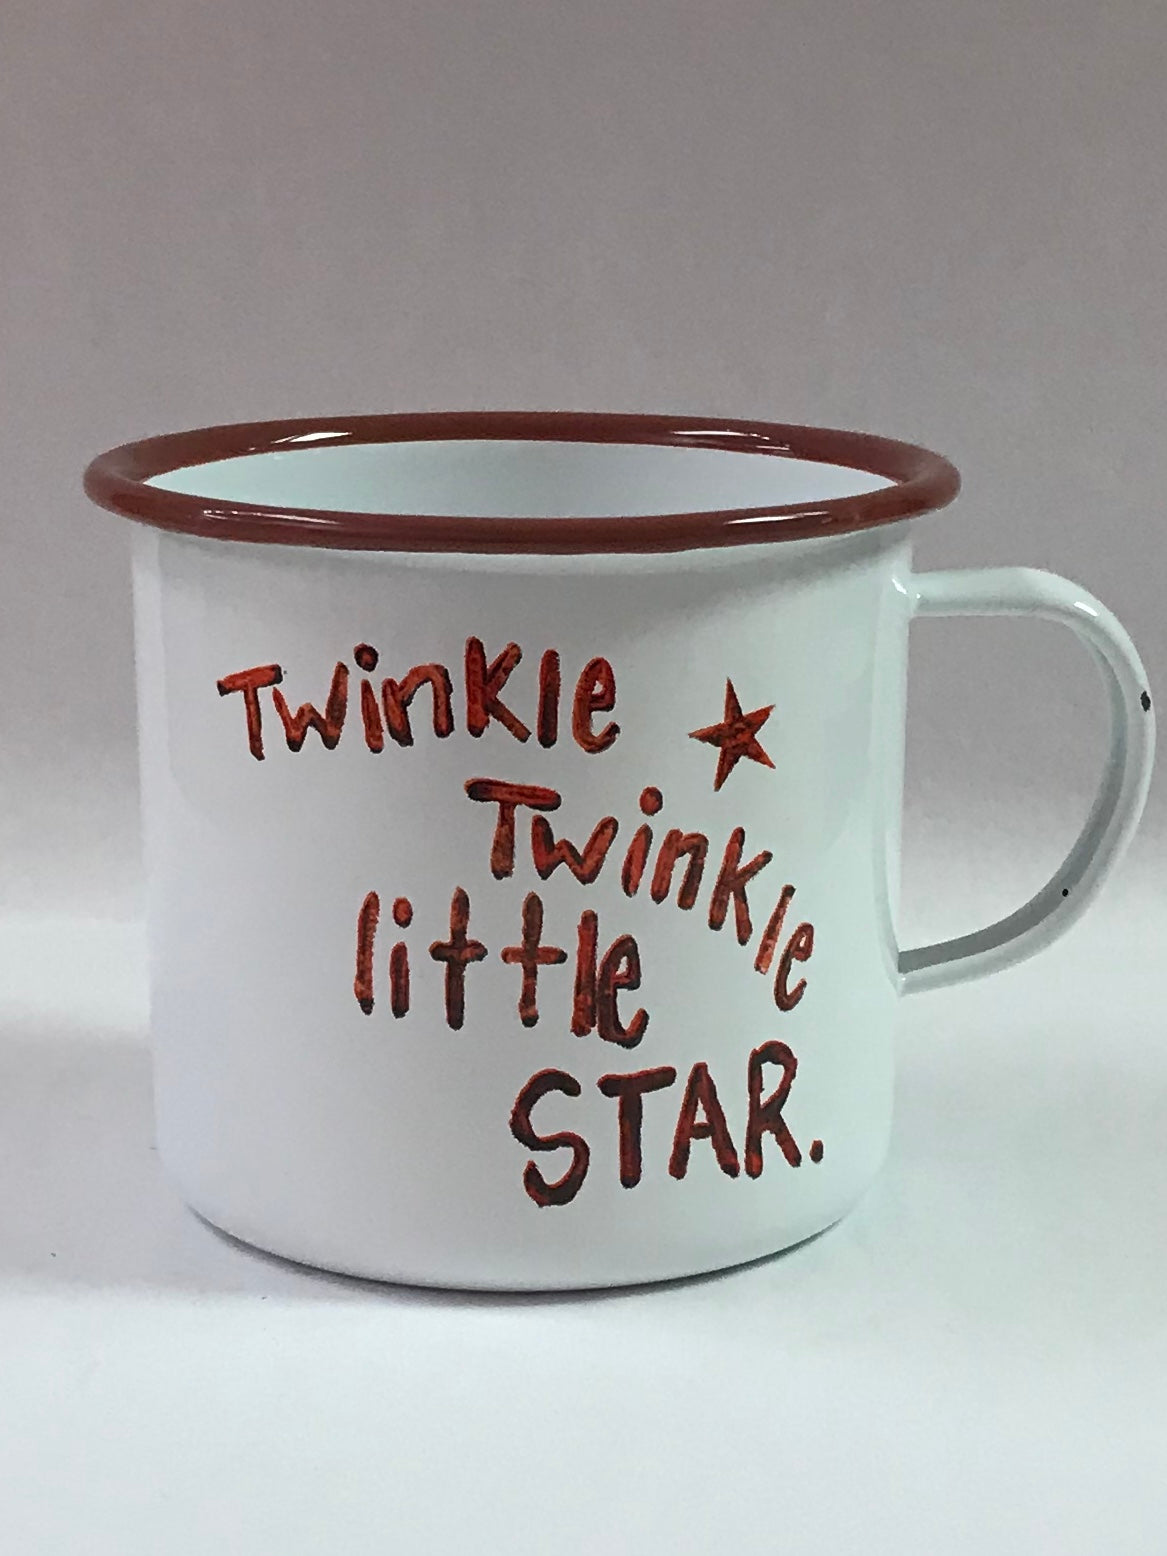 Twinkle Little Star Enamel Mug